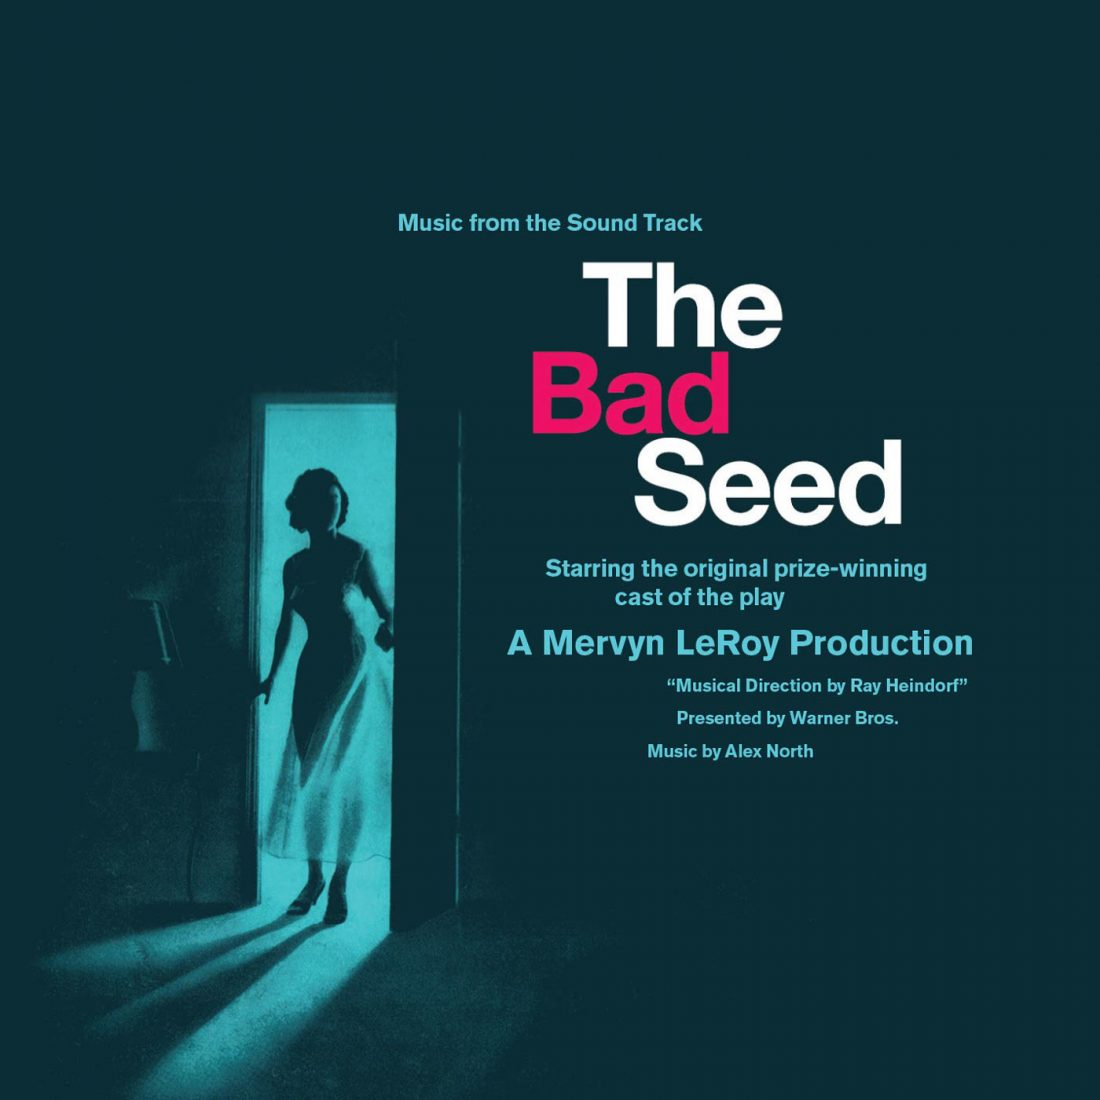 The Bad Seed: Music from the Soundtrack by Alex North – Limited Edition